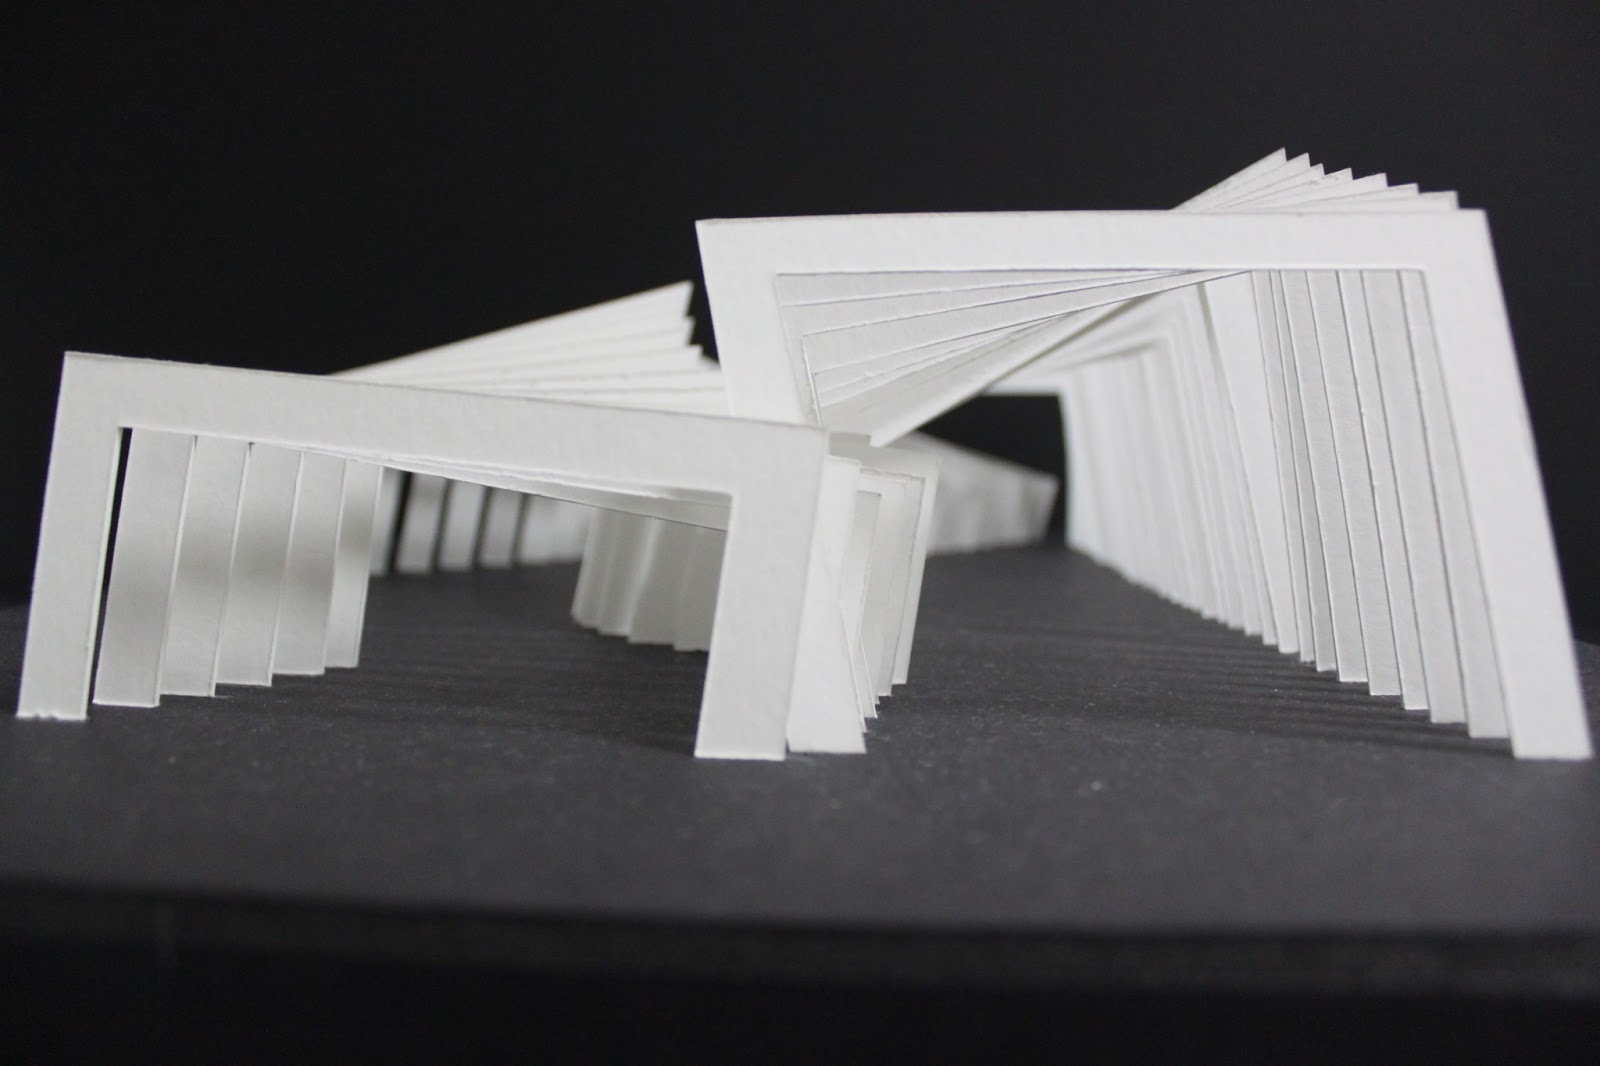 Jonathan yip architectural studies abstract model for Architectural concept models